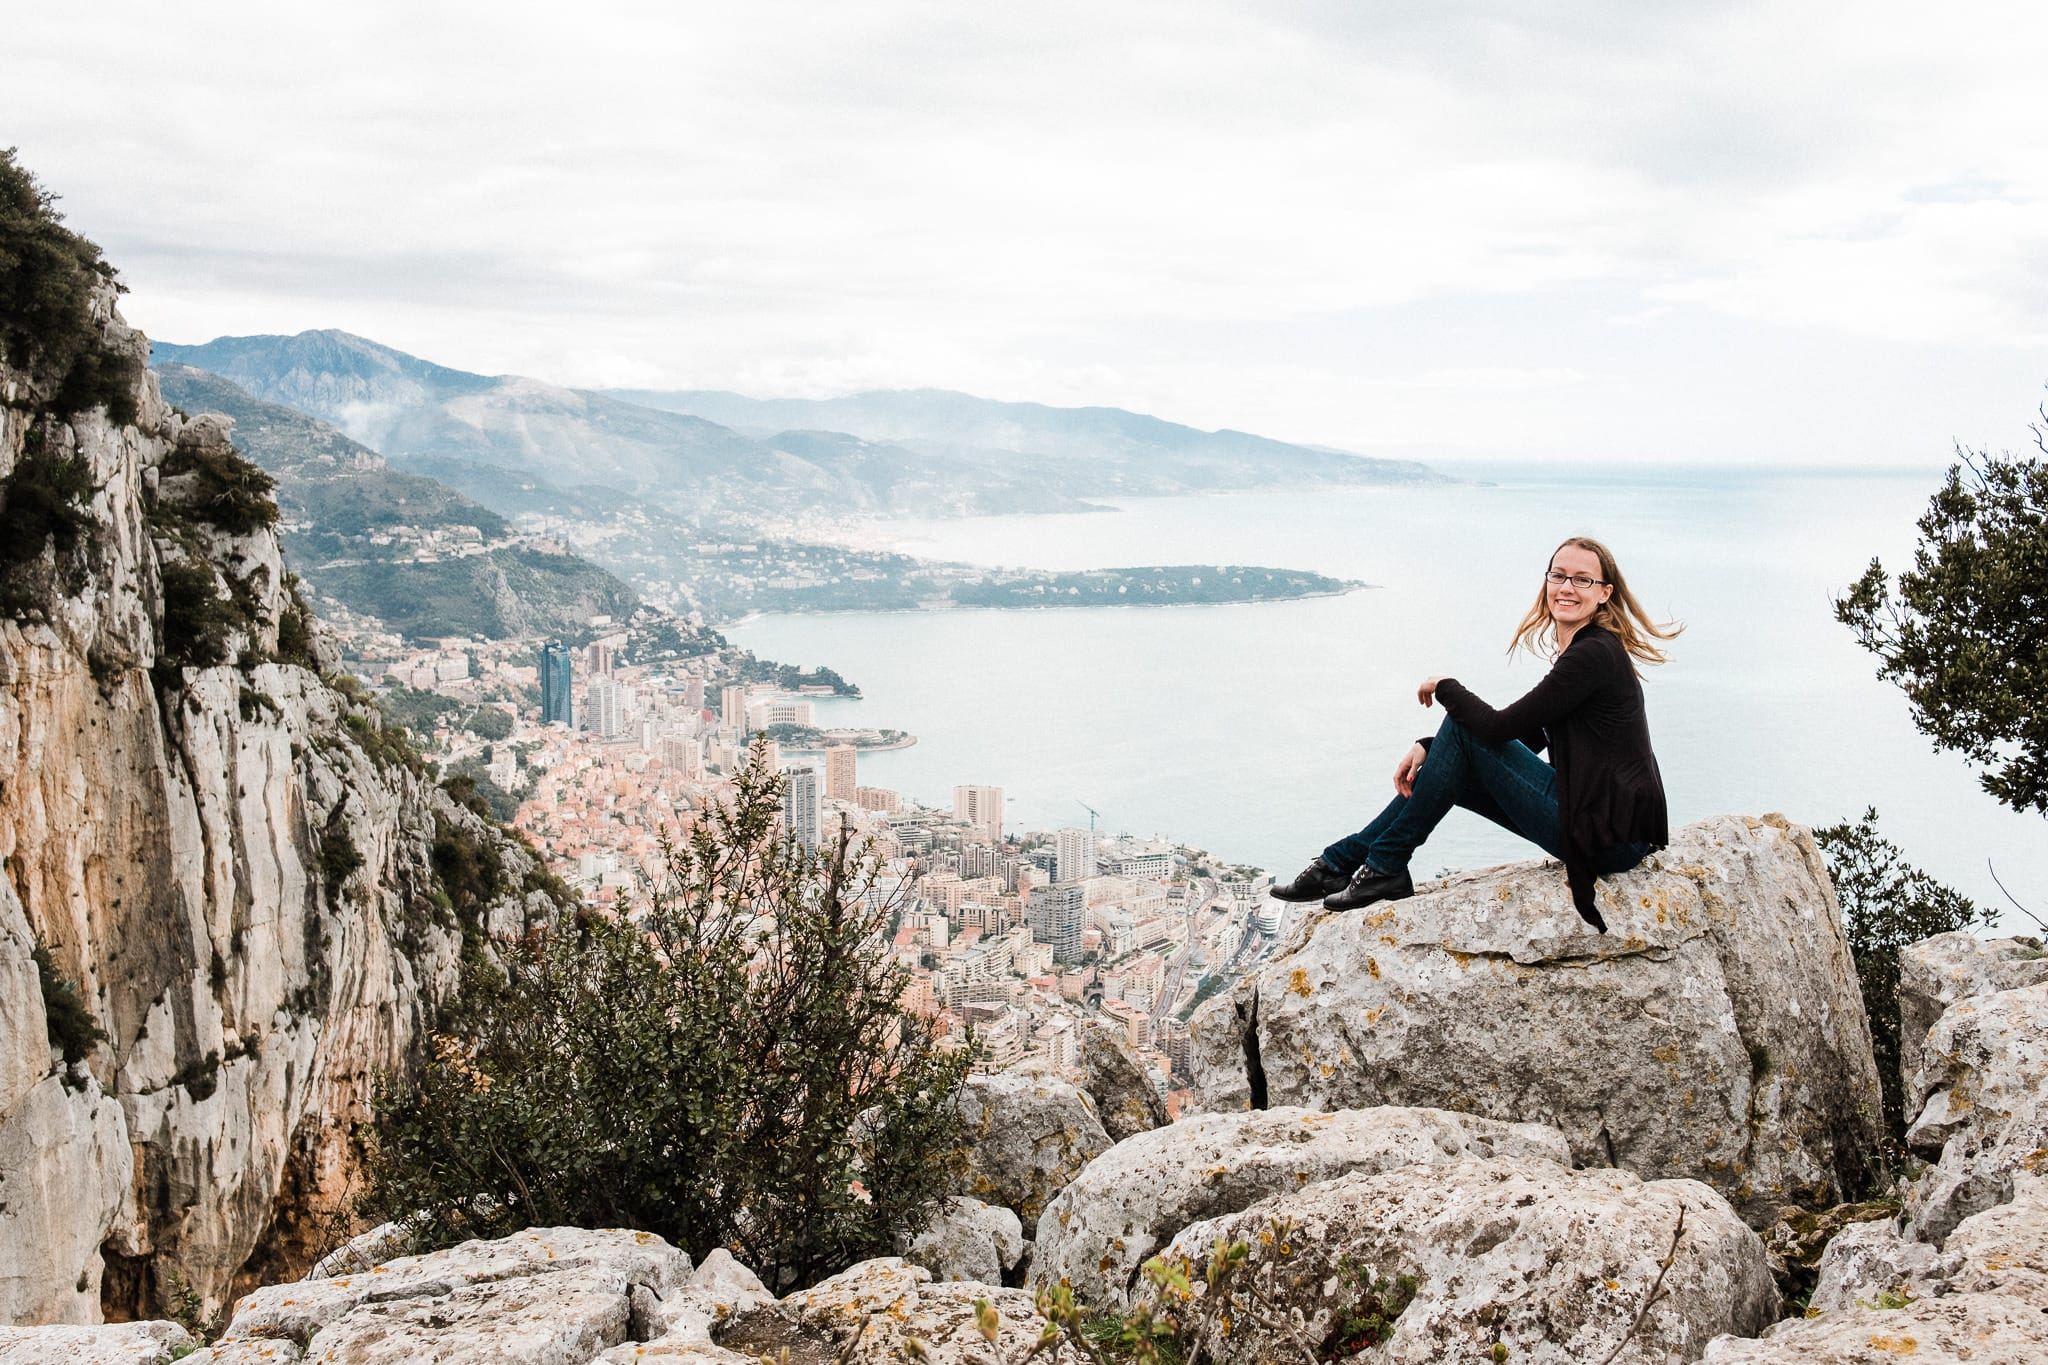 Monaco overlook French Riviera elopement location, destination adventure wedding photographer